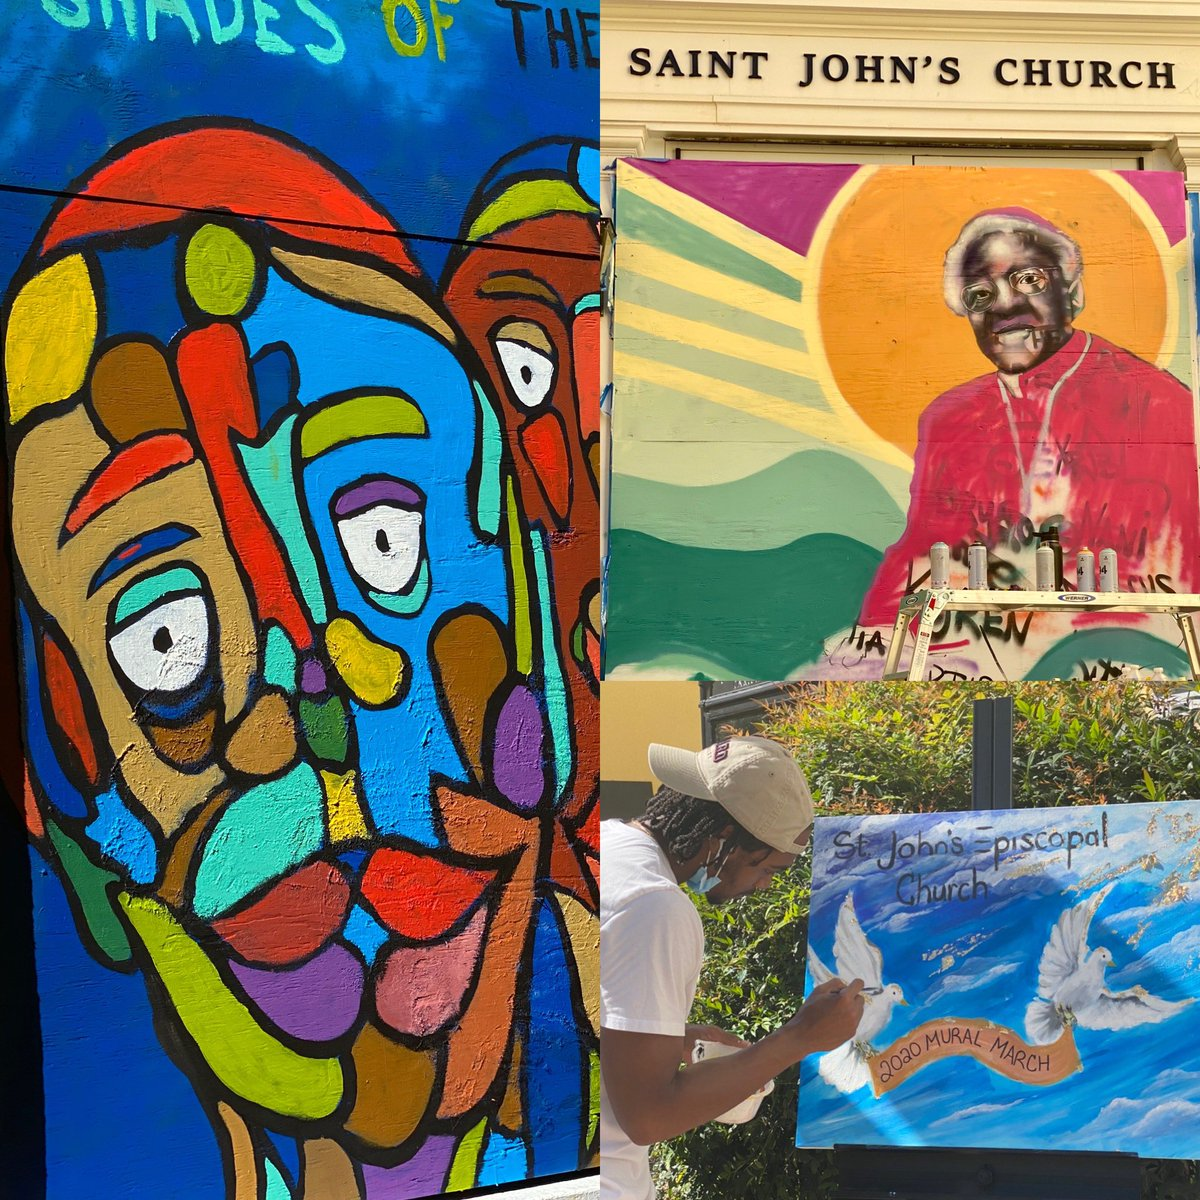 Just a sampling of some of the vibrant images on the plywood boards covering the stained glass windows of @StJohnLafayette, thanks to the @PAINTSInstitute + @DowntownDCBID. #muralmarch #BLMPlaza #StJohnsChurch https://t.co/0ZHH3zOjKn